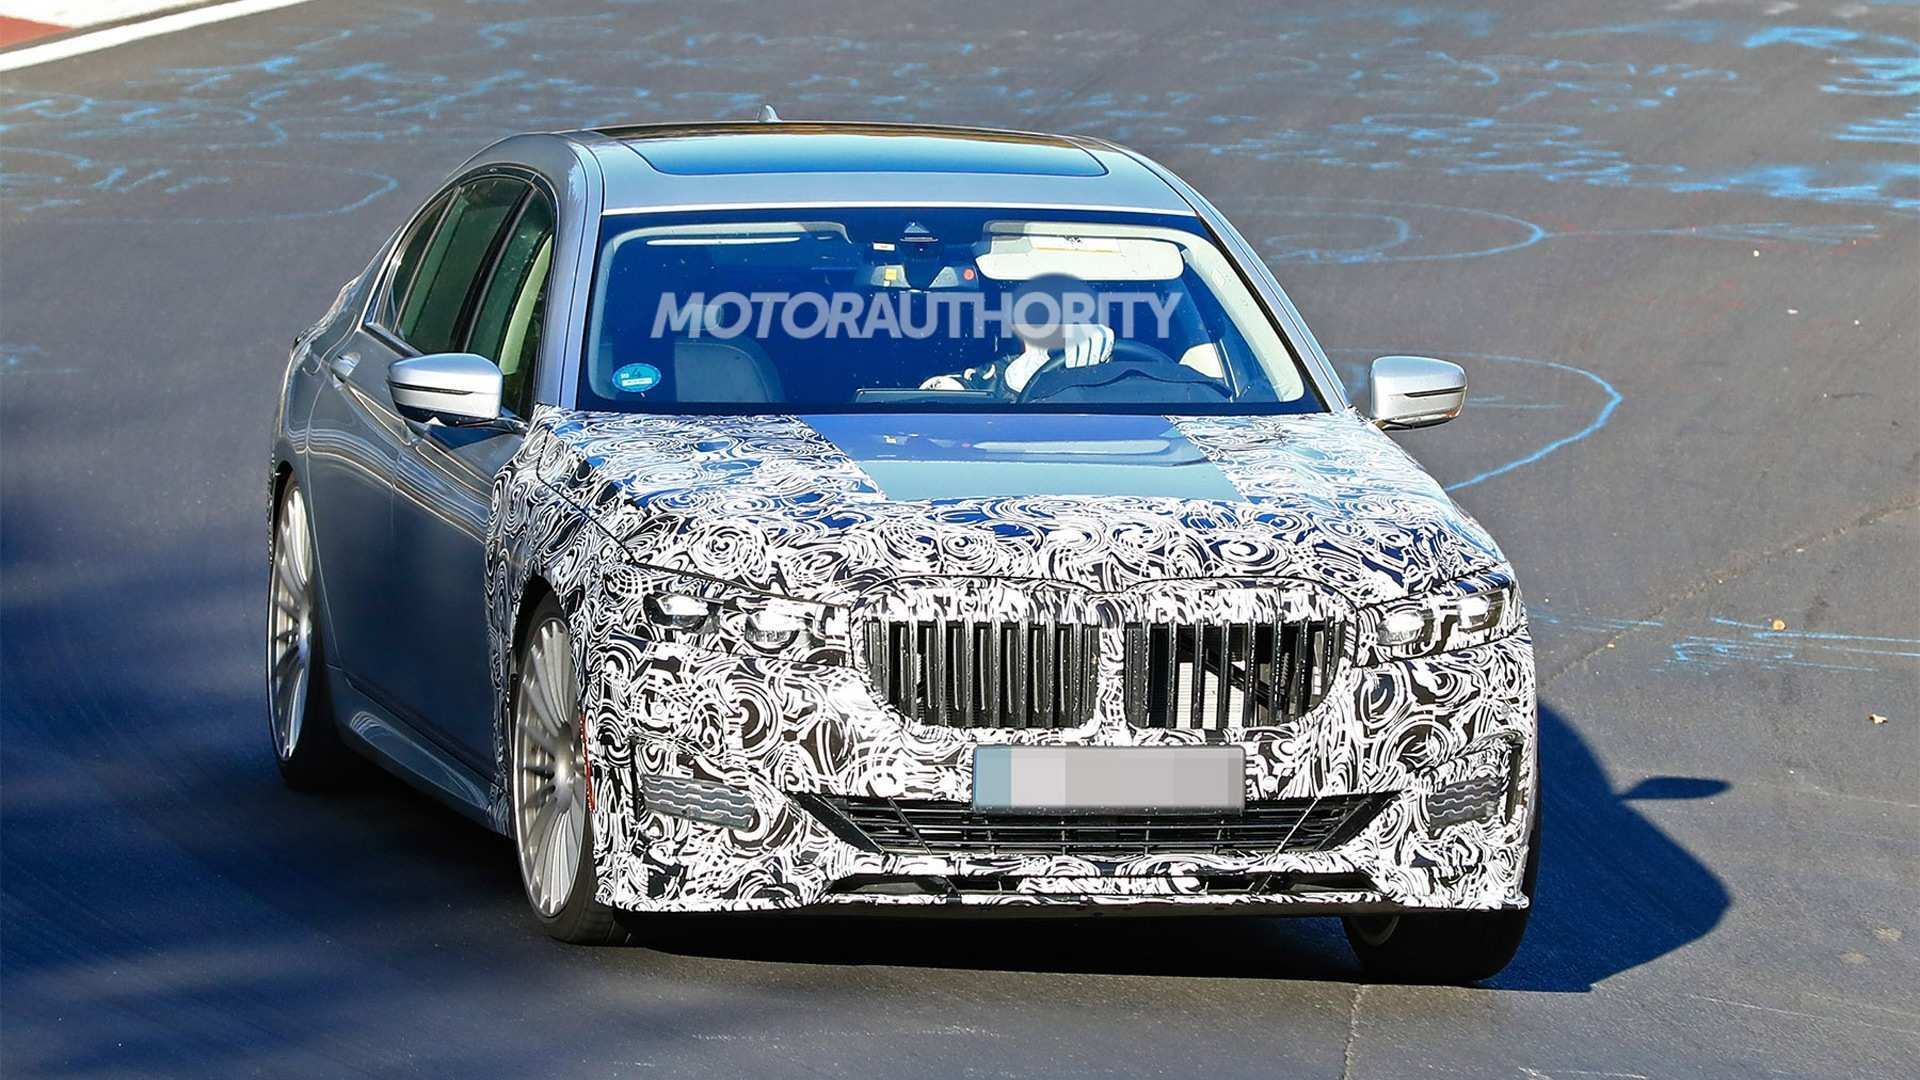 98 New BMW Alpina B8 2020 Images with BMW Alpina B8 2020